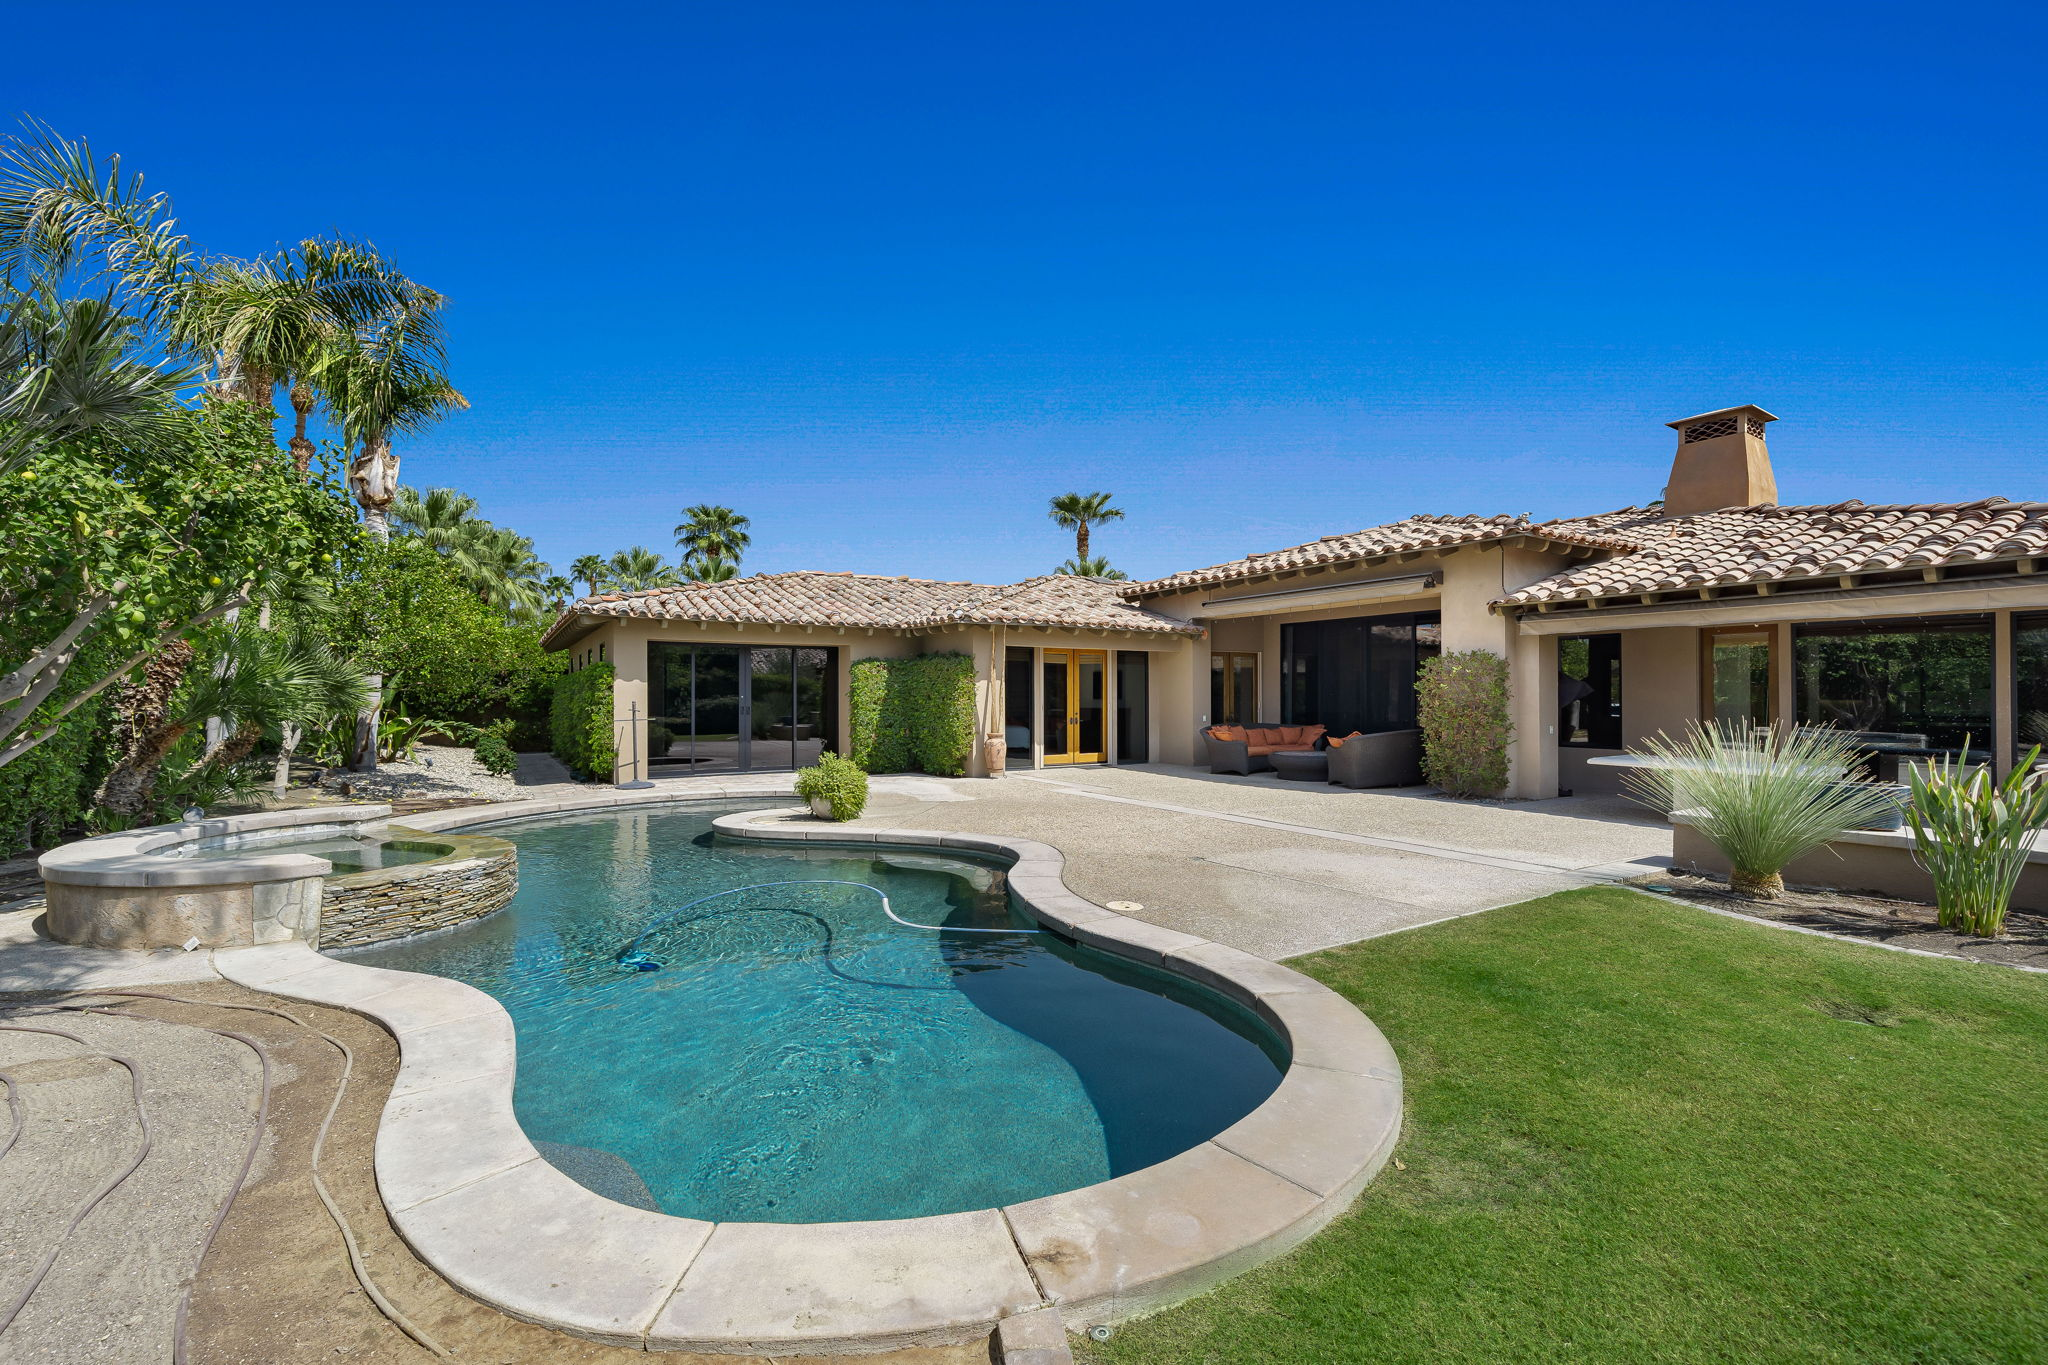 North Facing Pool/Spa, Lawn and Home